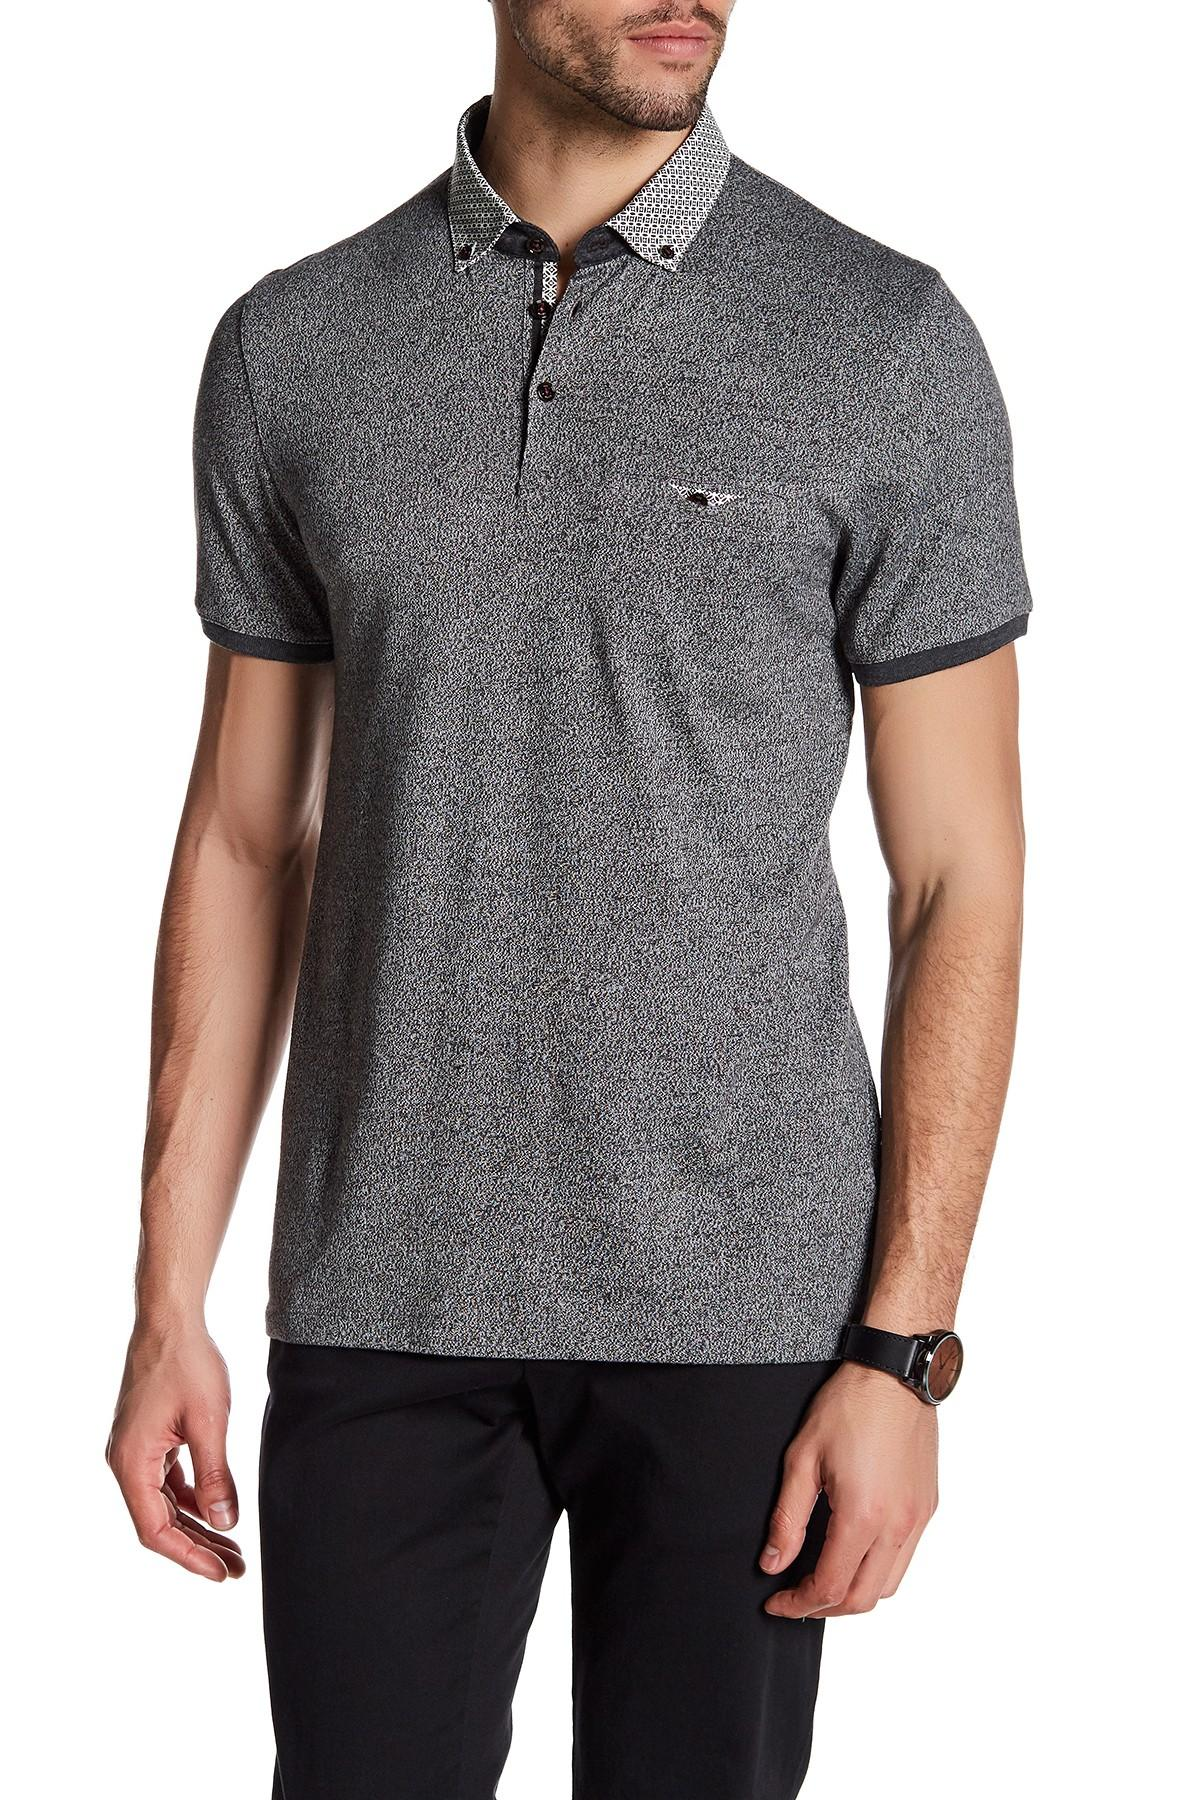 Ted baker printed collar polo shirt in gray for men lyst for Ted baker mens polo shirts